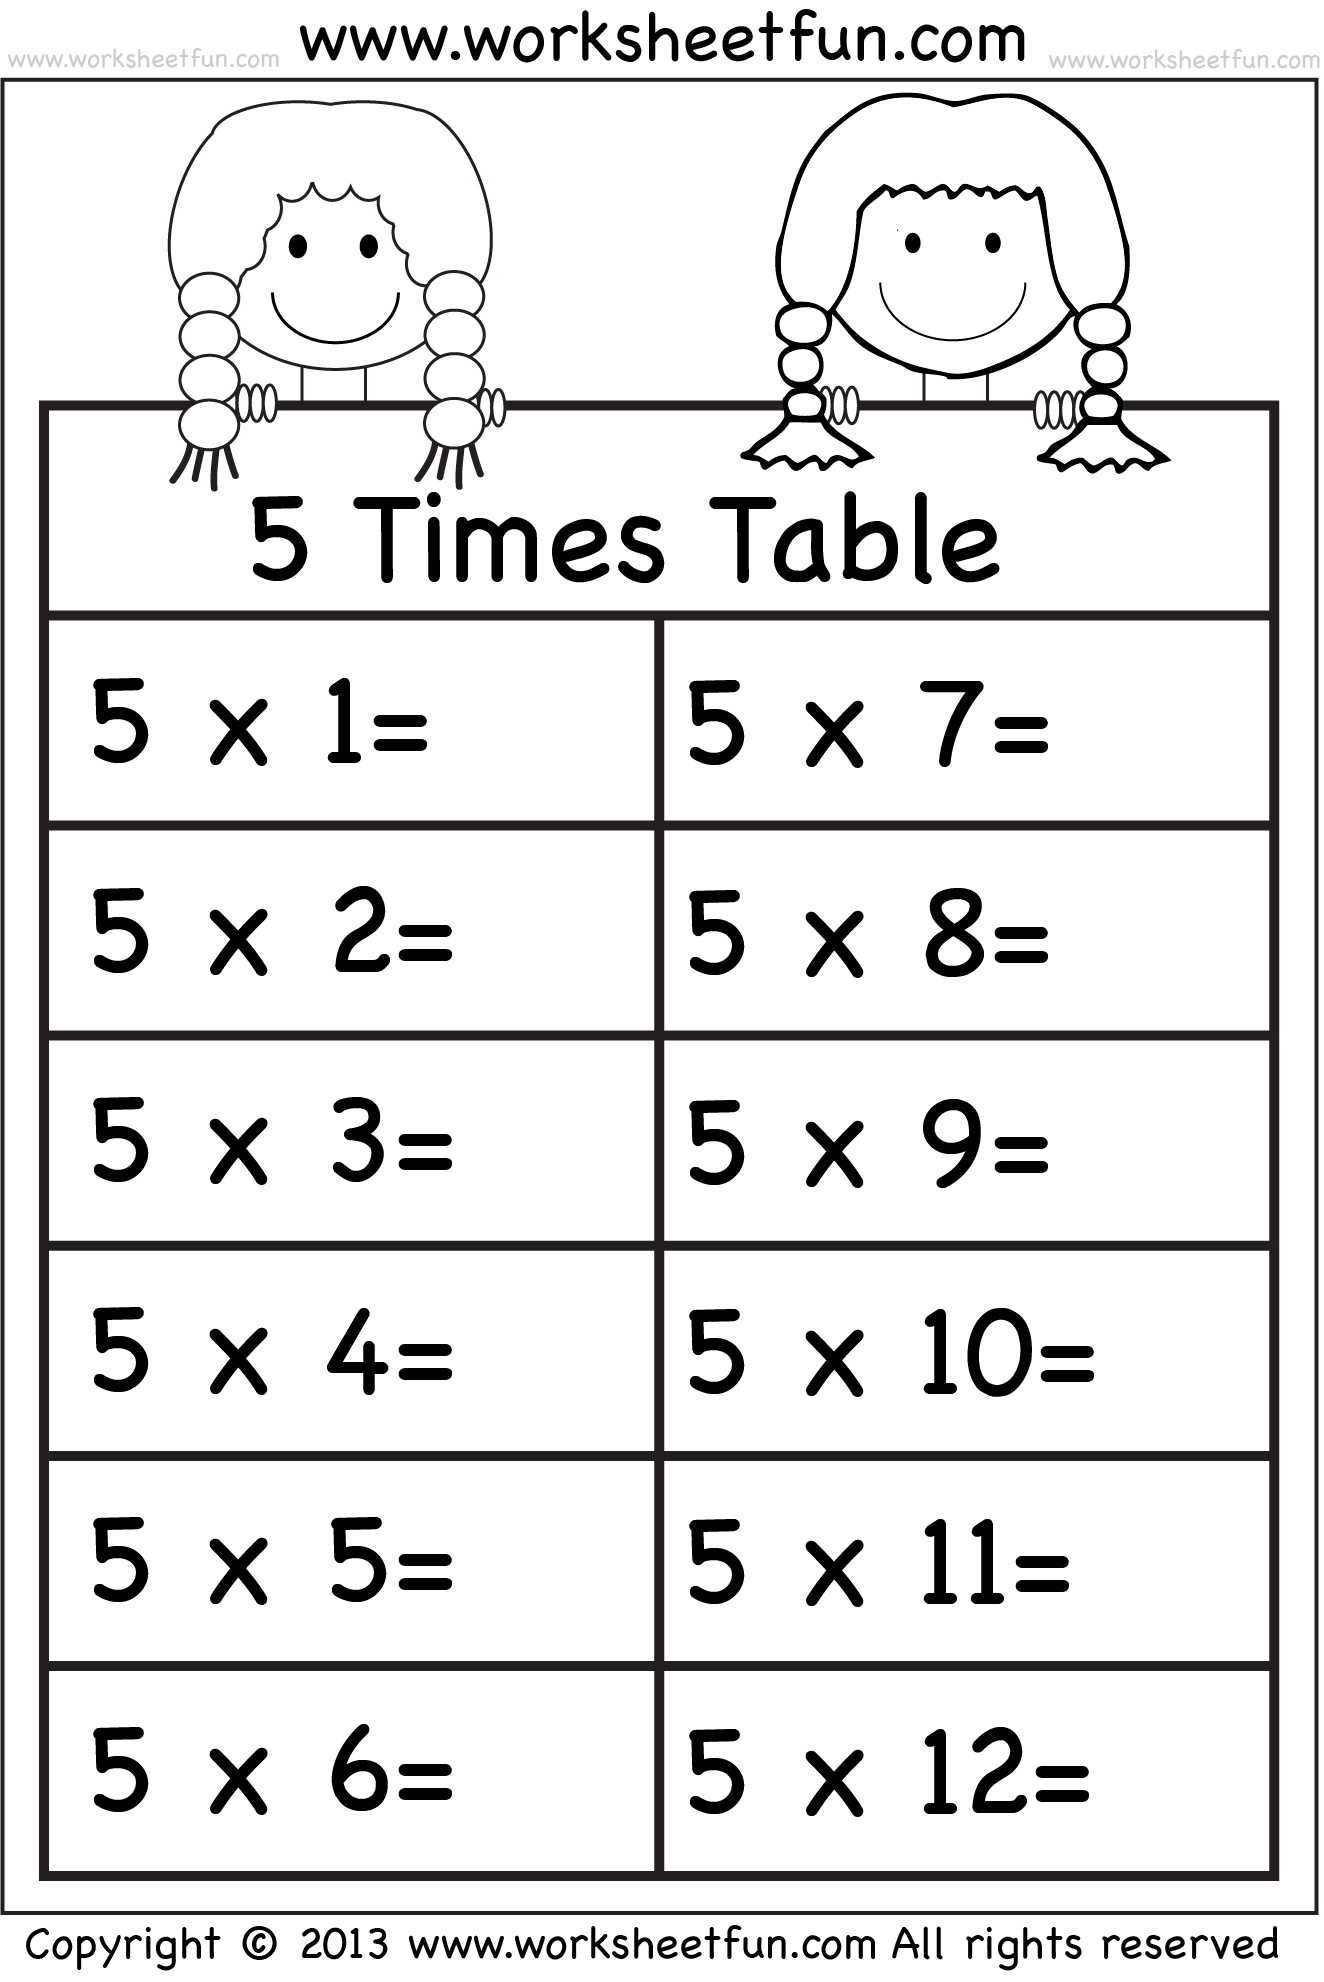 worksheet 5 Times Tables Worksheet 5 kez tablo math matematik pinterest times tables worksheets 11 and 12 eleven free printable worksheets